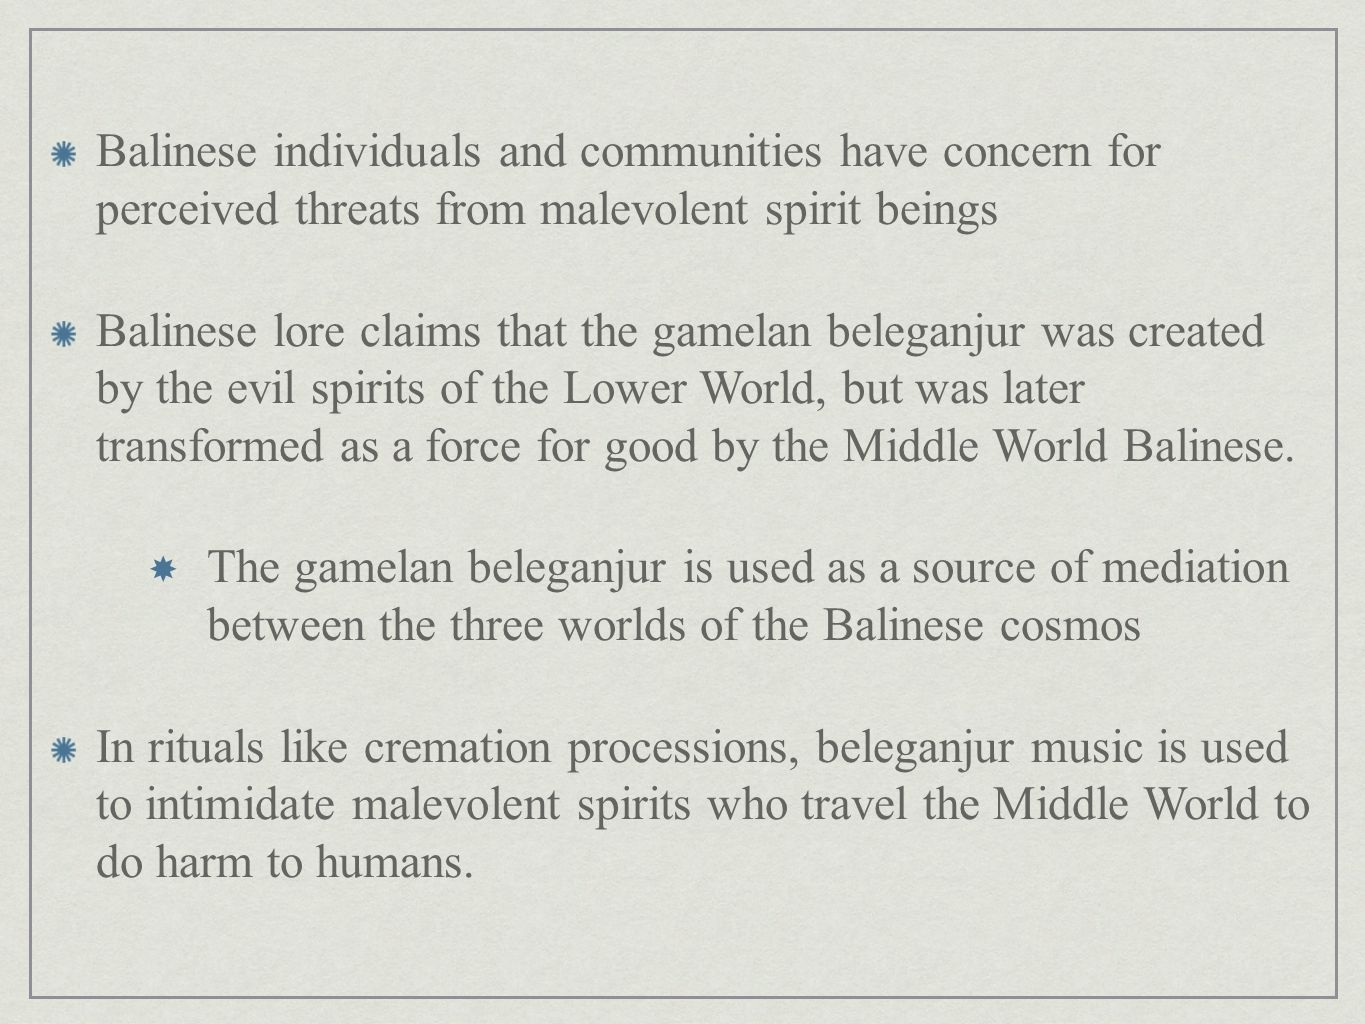 Balinese individuals and communities have concern for perceived threats from malevolent spirit beings